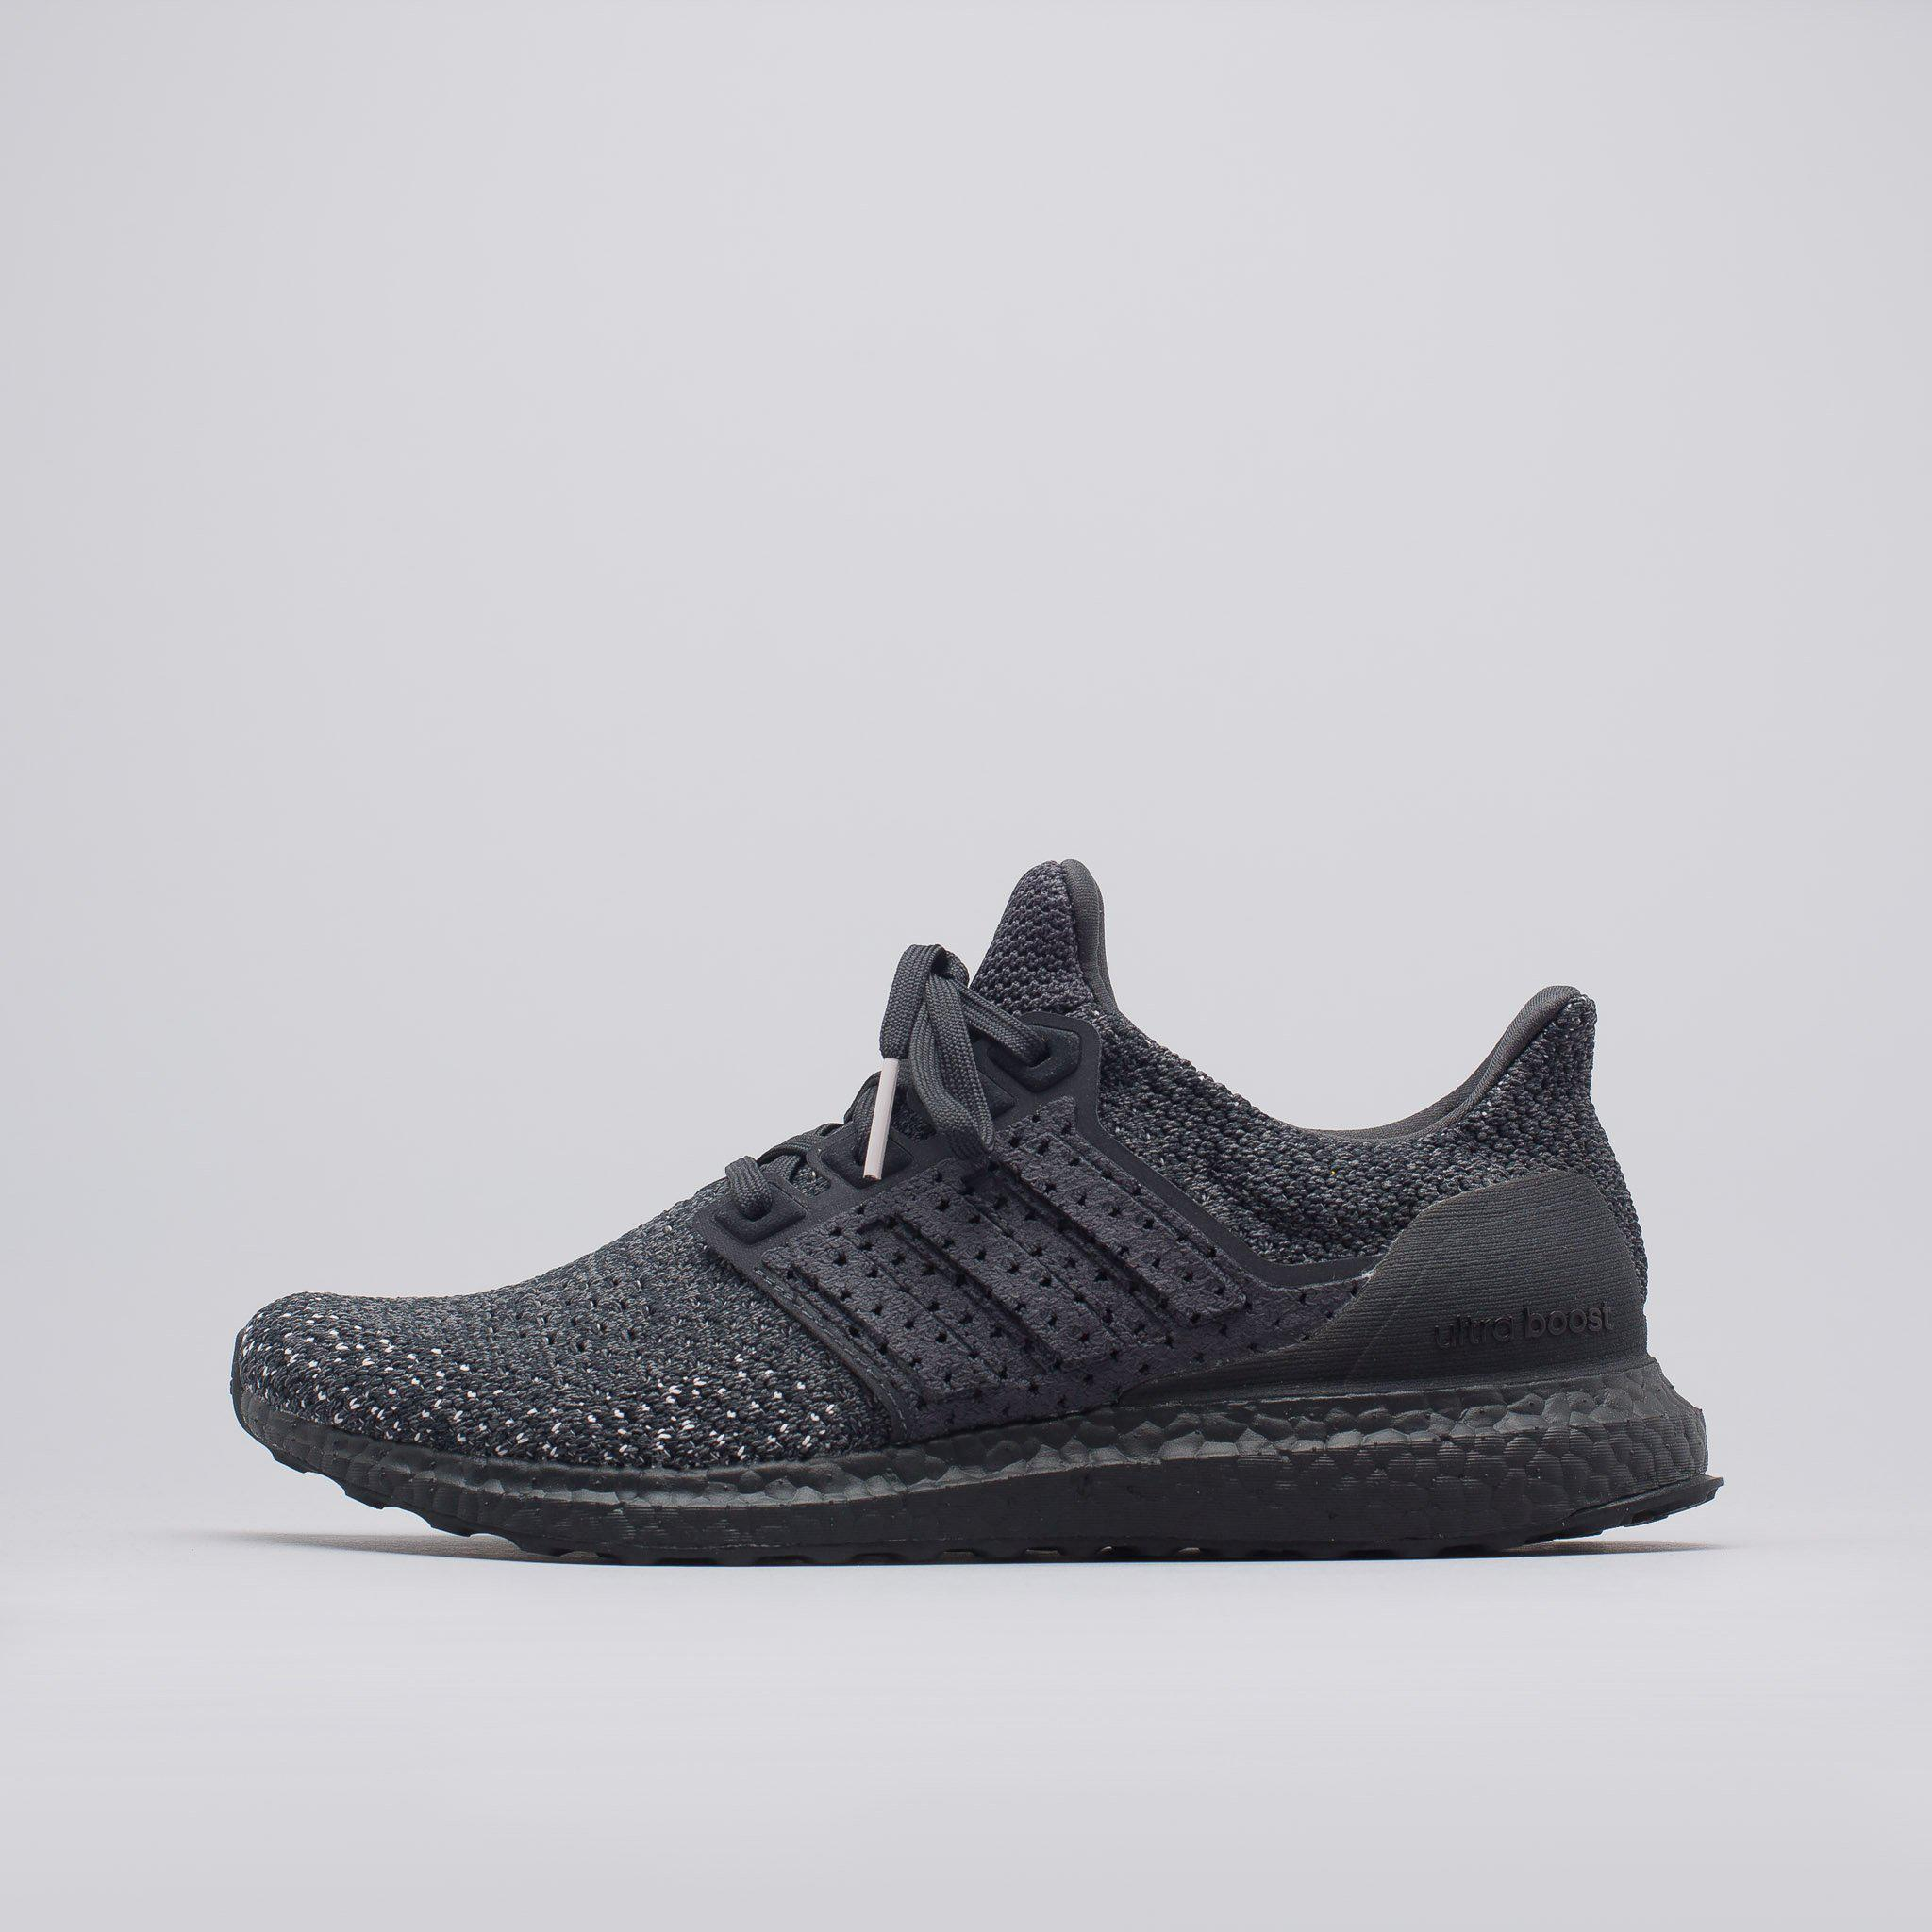 7c103dc883e94 Lyst - adidas Ultra Boost Clima In Carbon in Black for Men